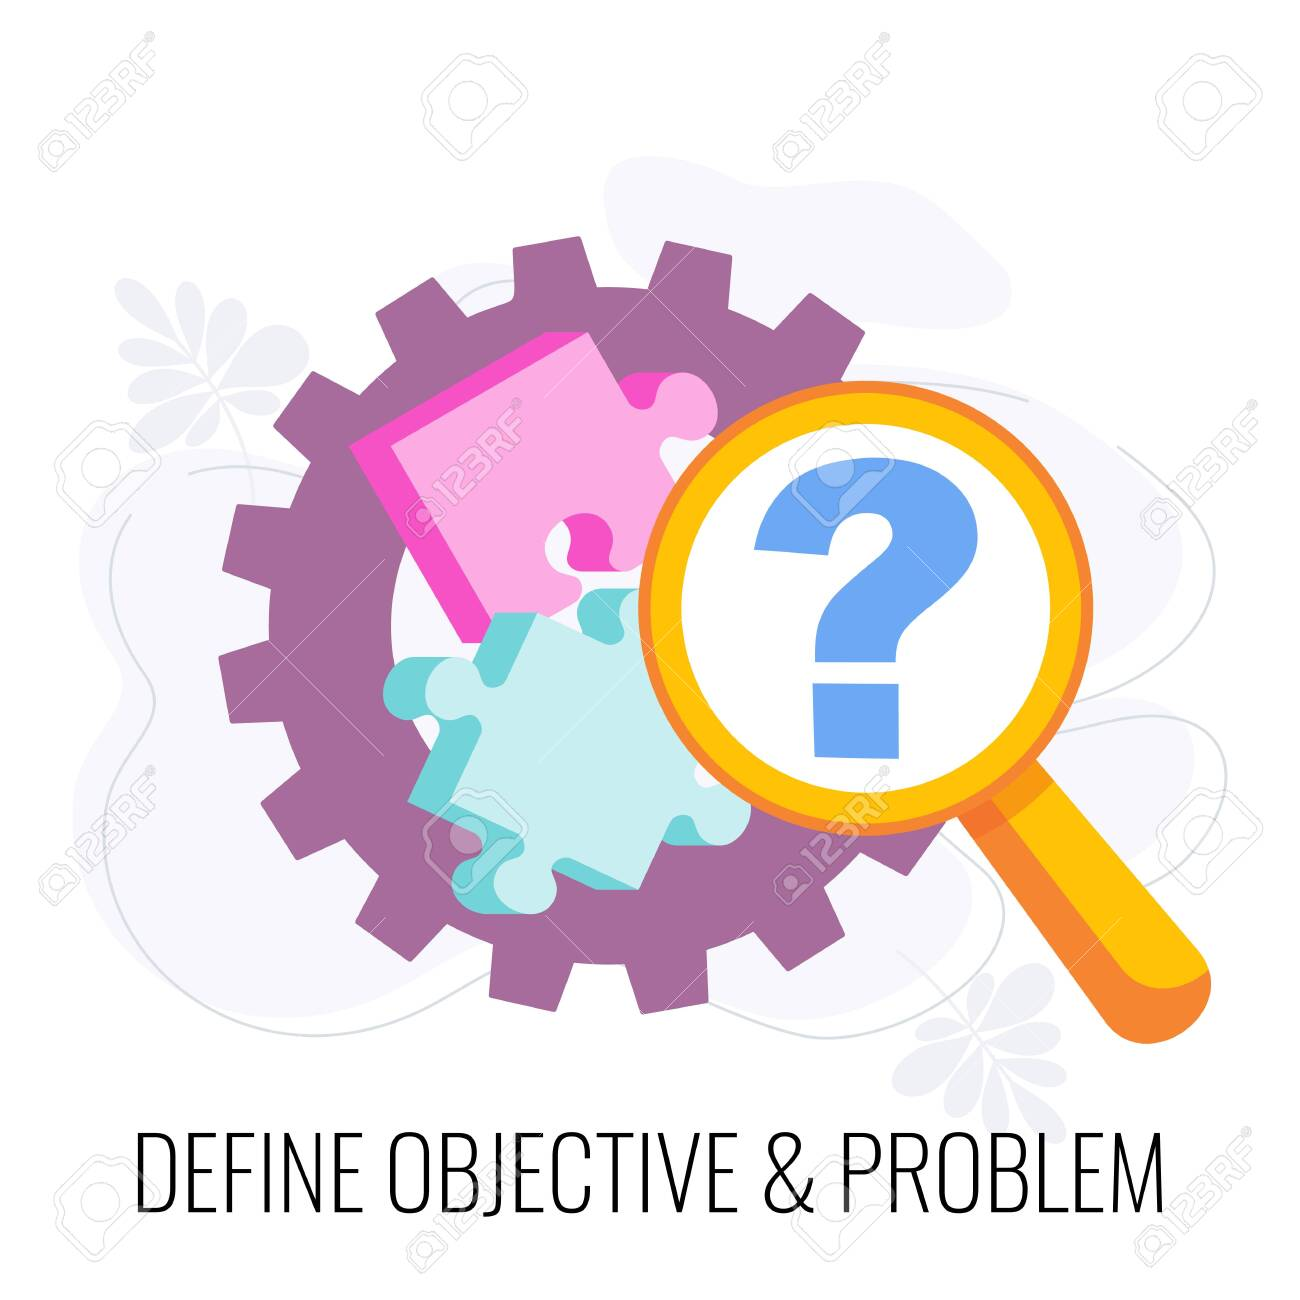 Define objective and problem icon. Market research. - 148814343